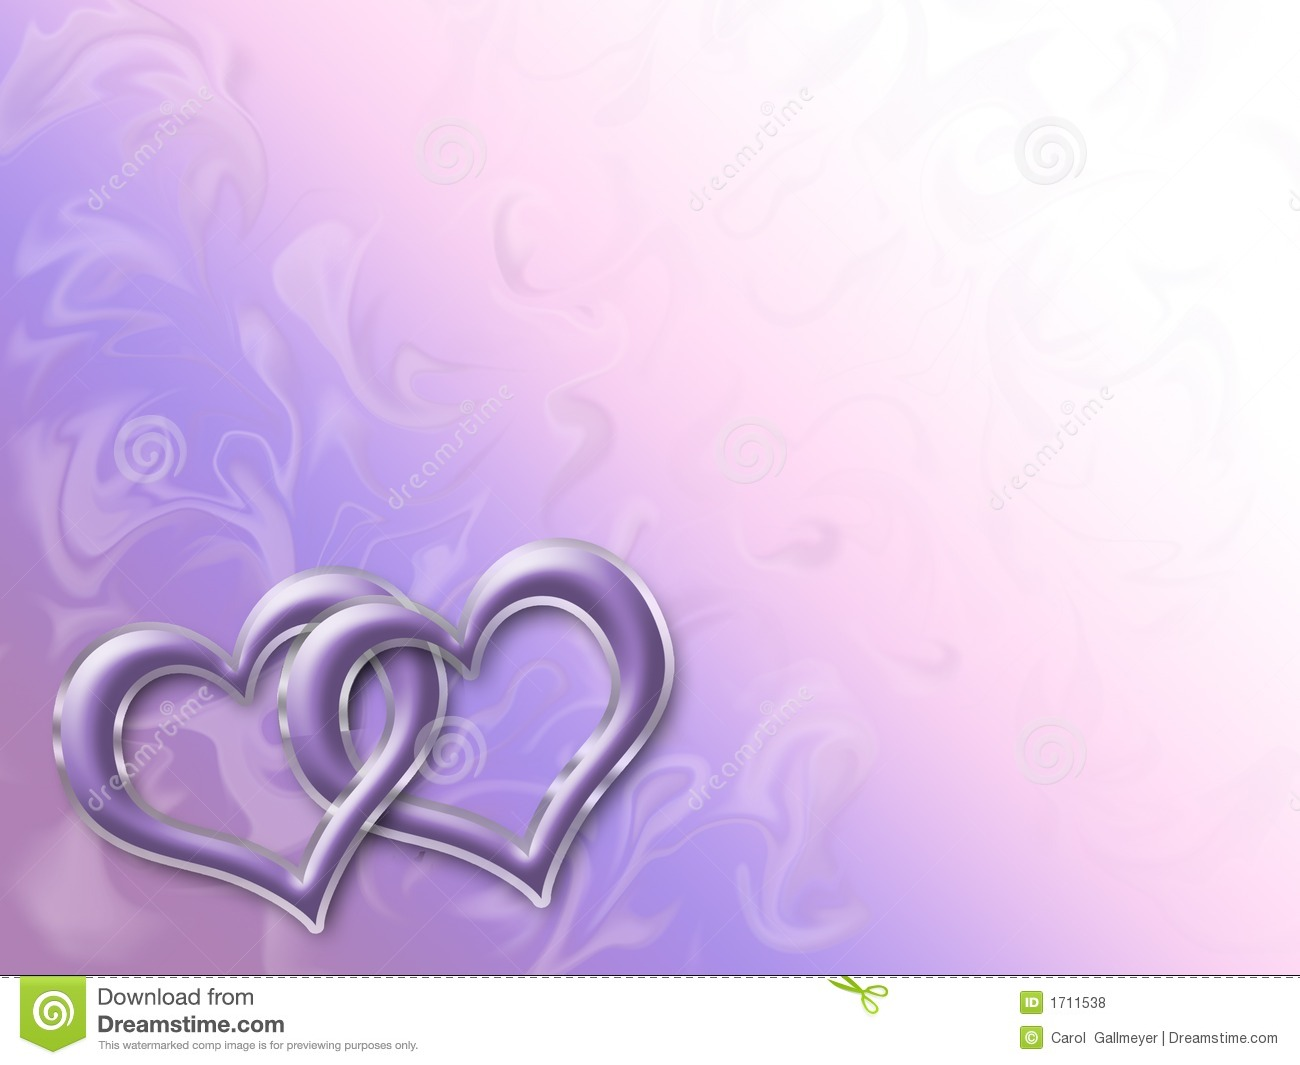 Linked Hearts Royalty Free Stock Photos Image 1711538